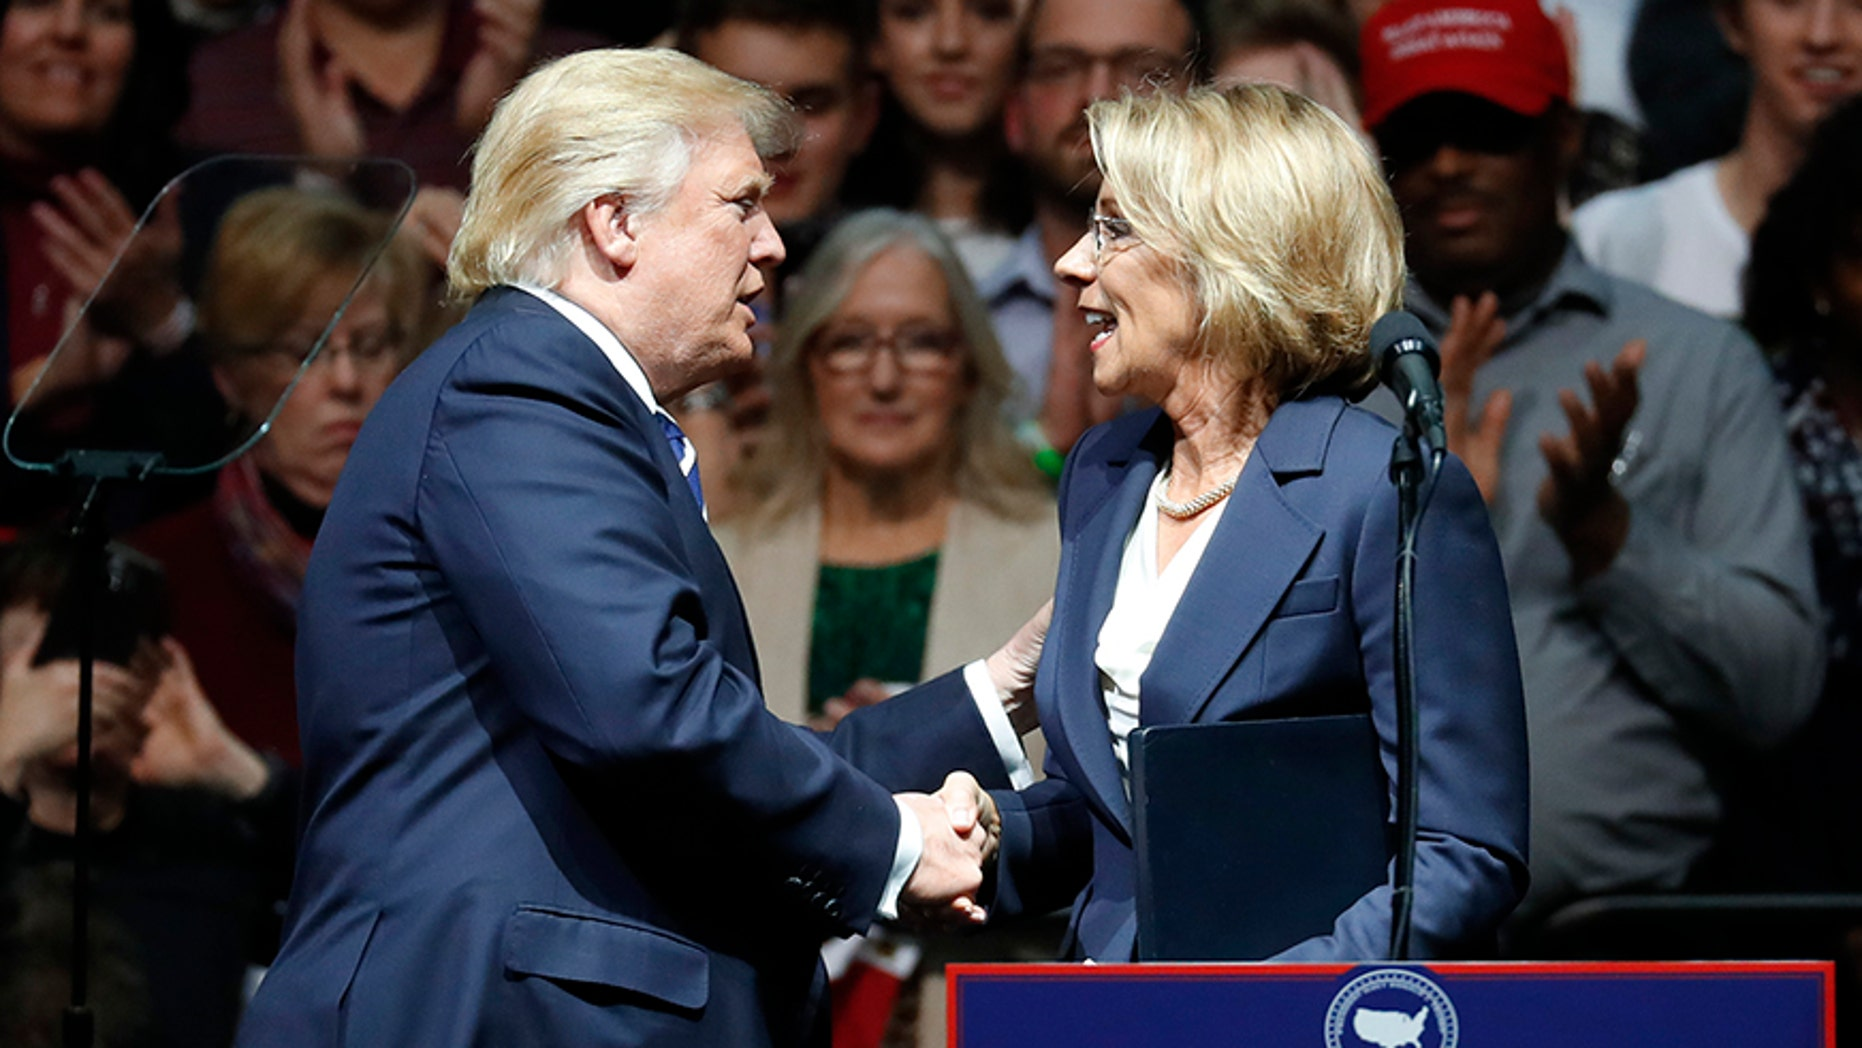 President-elect Donald Trump shakes hands with his pick for Education Secretary Betsy DeVos during a rally, in Grand Rapids, Mich., Friday, Dec. 9, 2016.